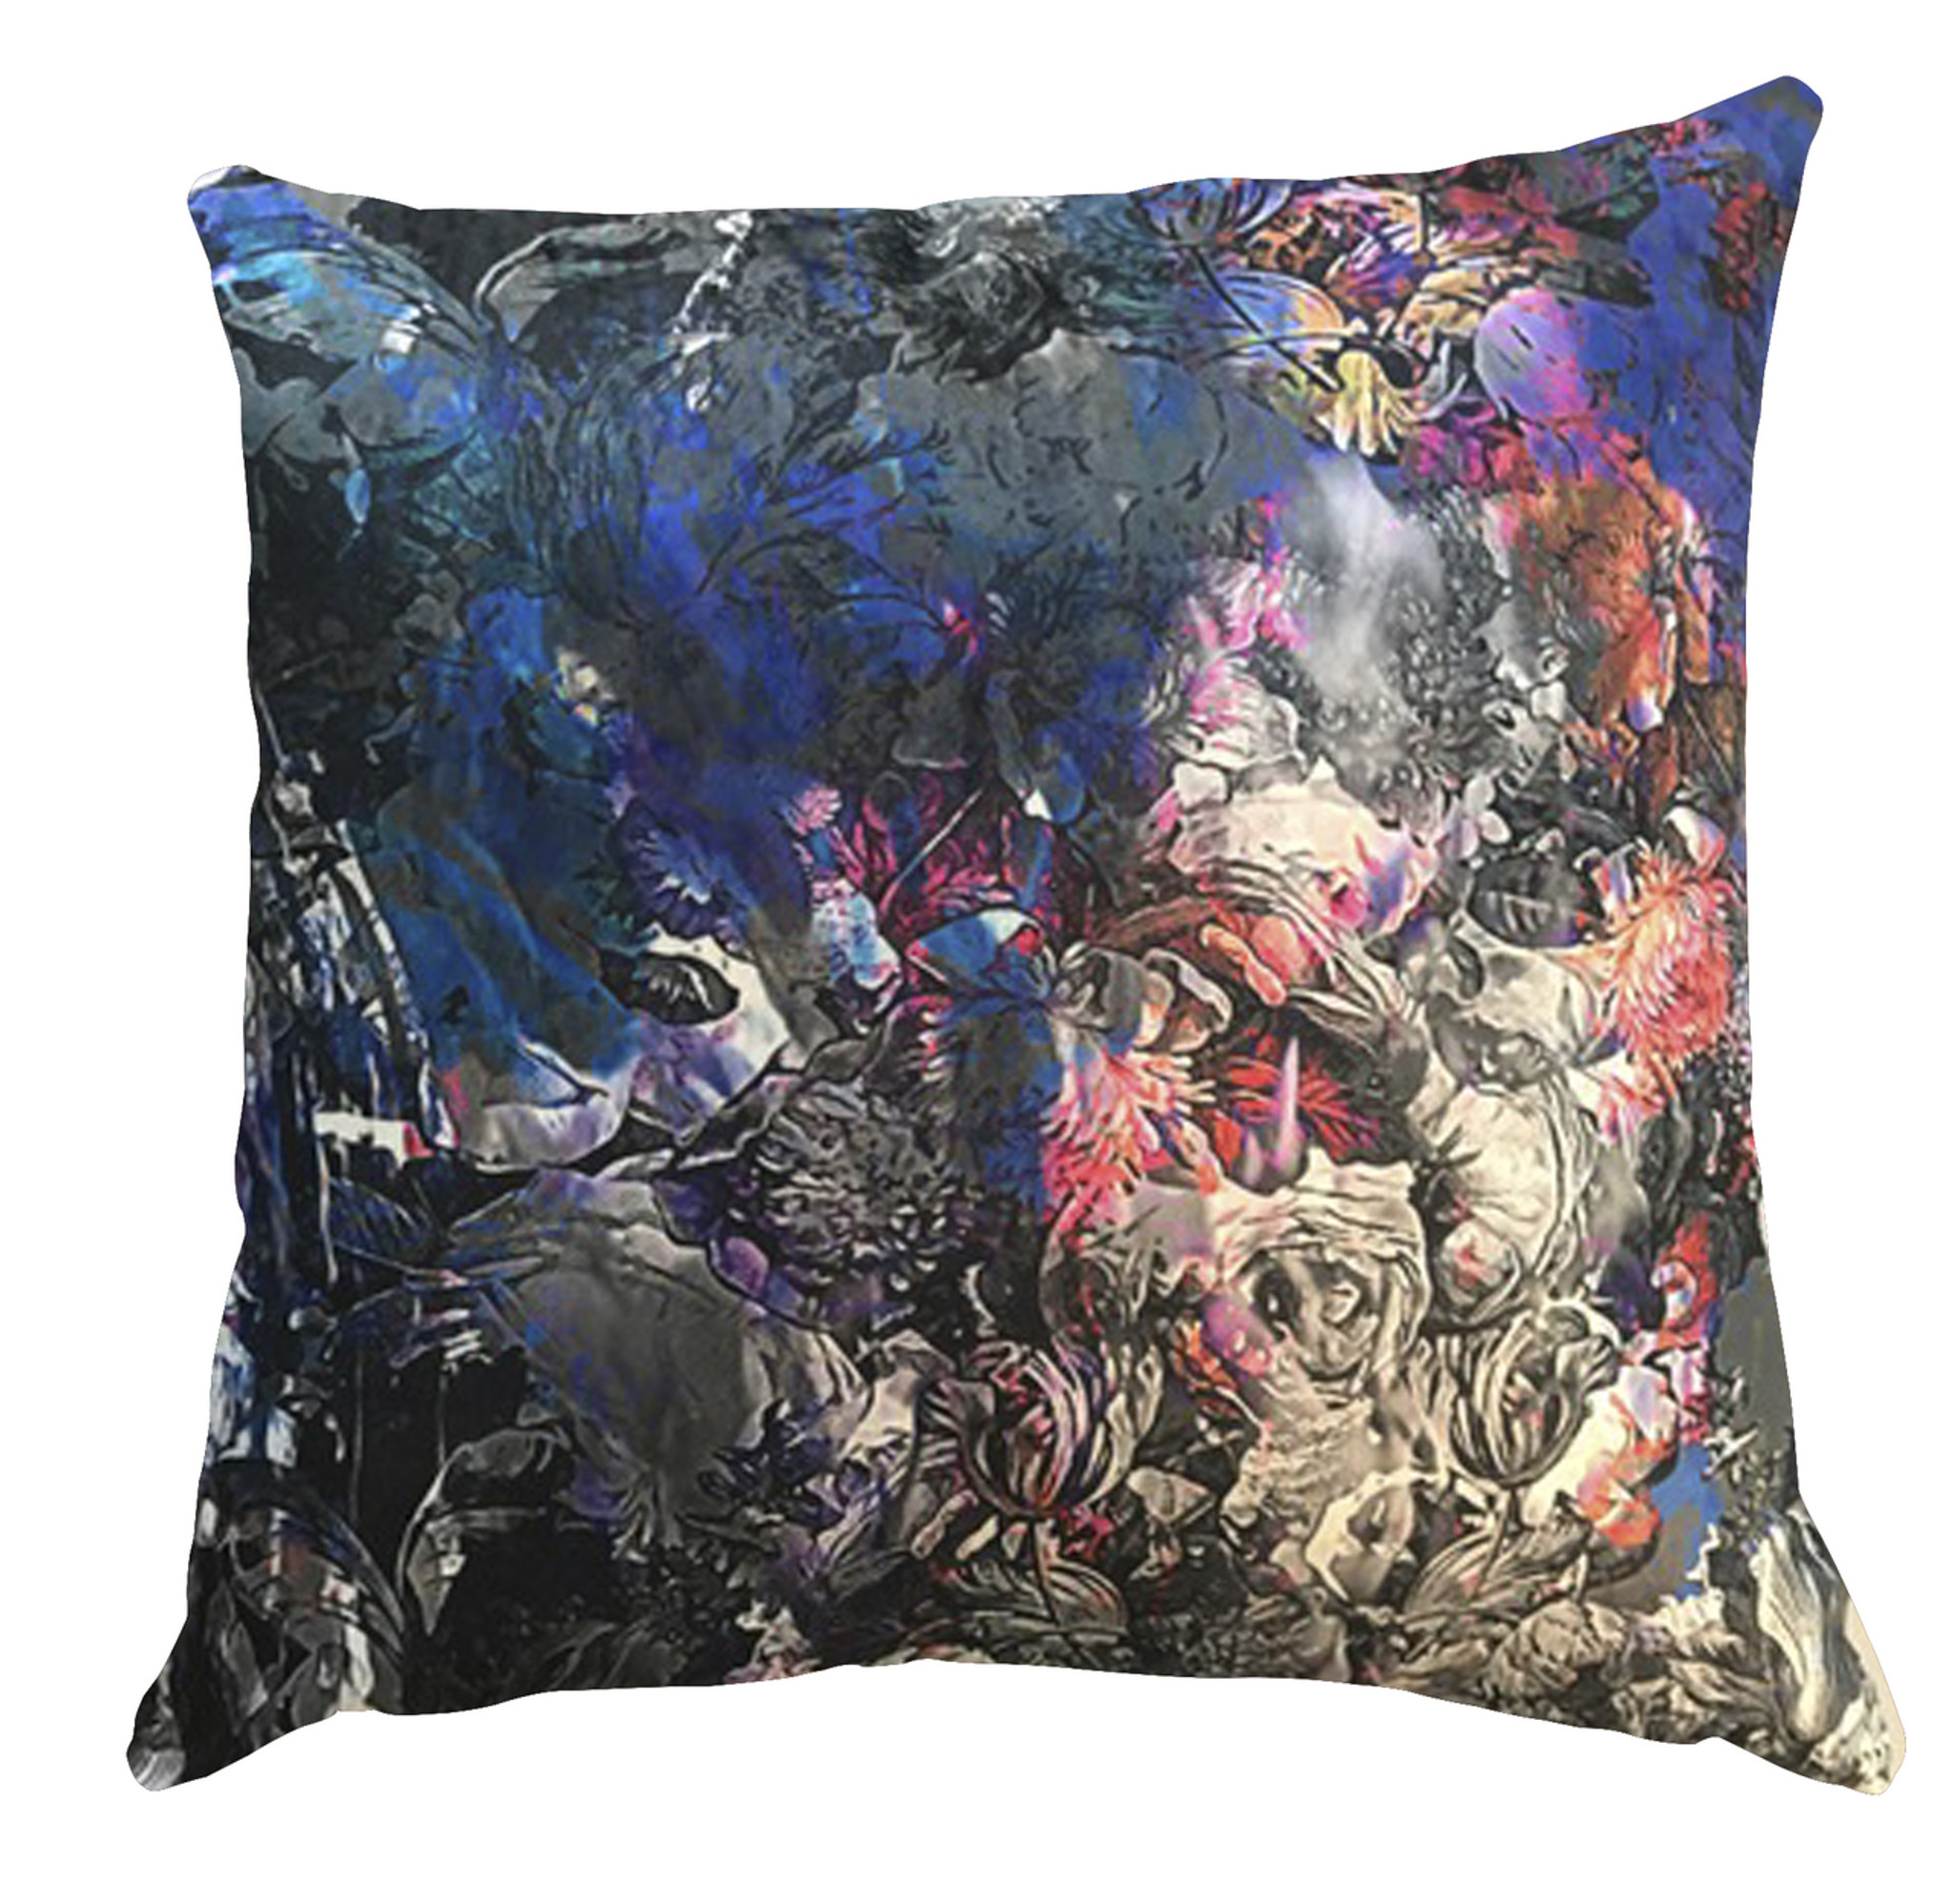 Cushion Cover - Let's Come to an Arrangement - Dark Blue